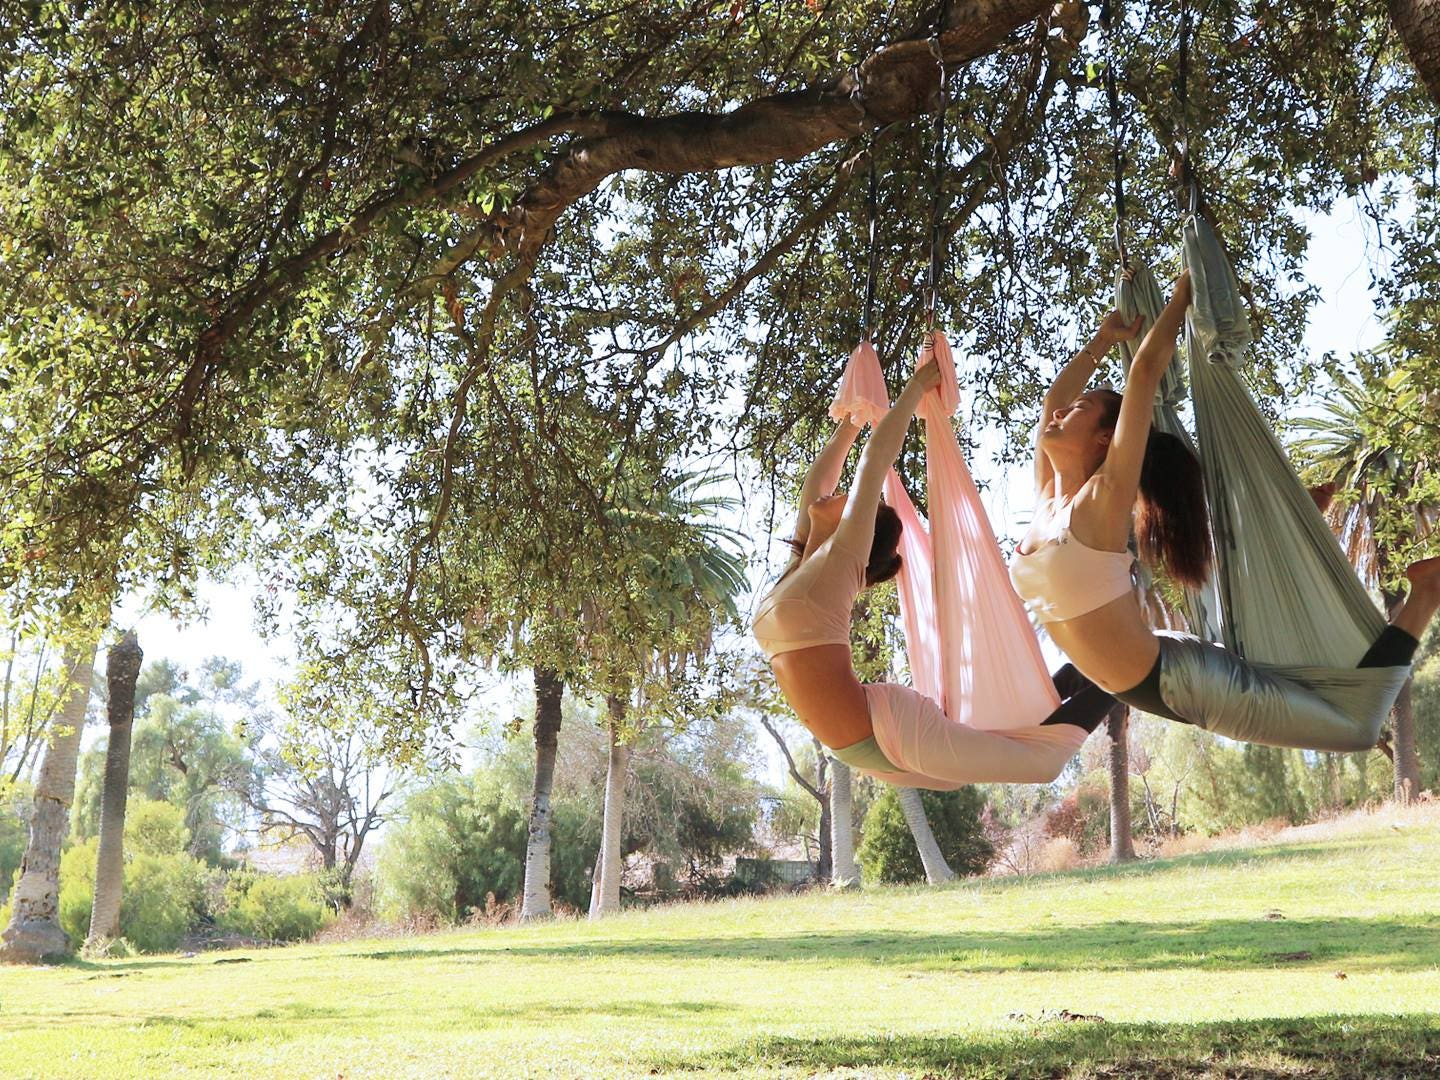 D&A Flying Yoga outdoors